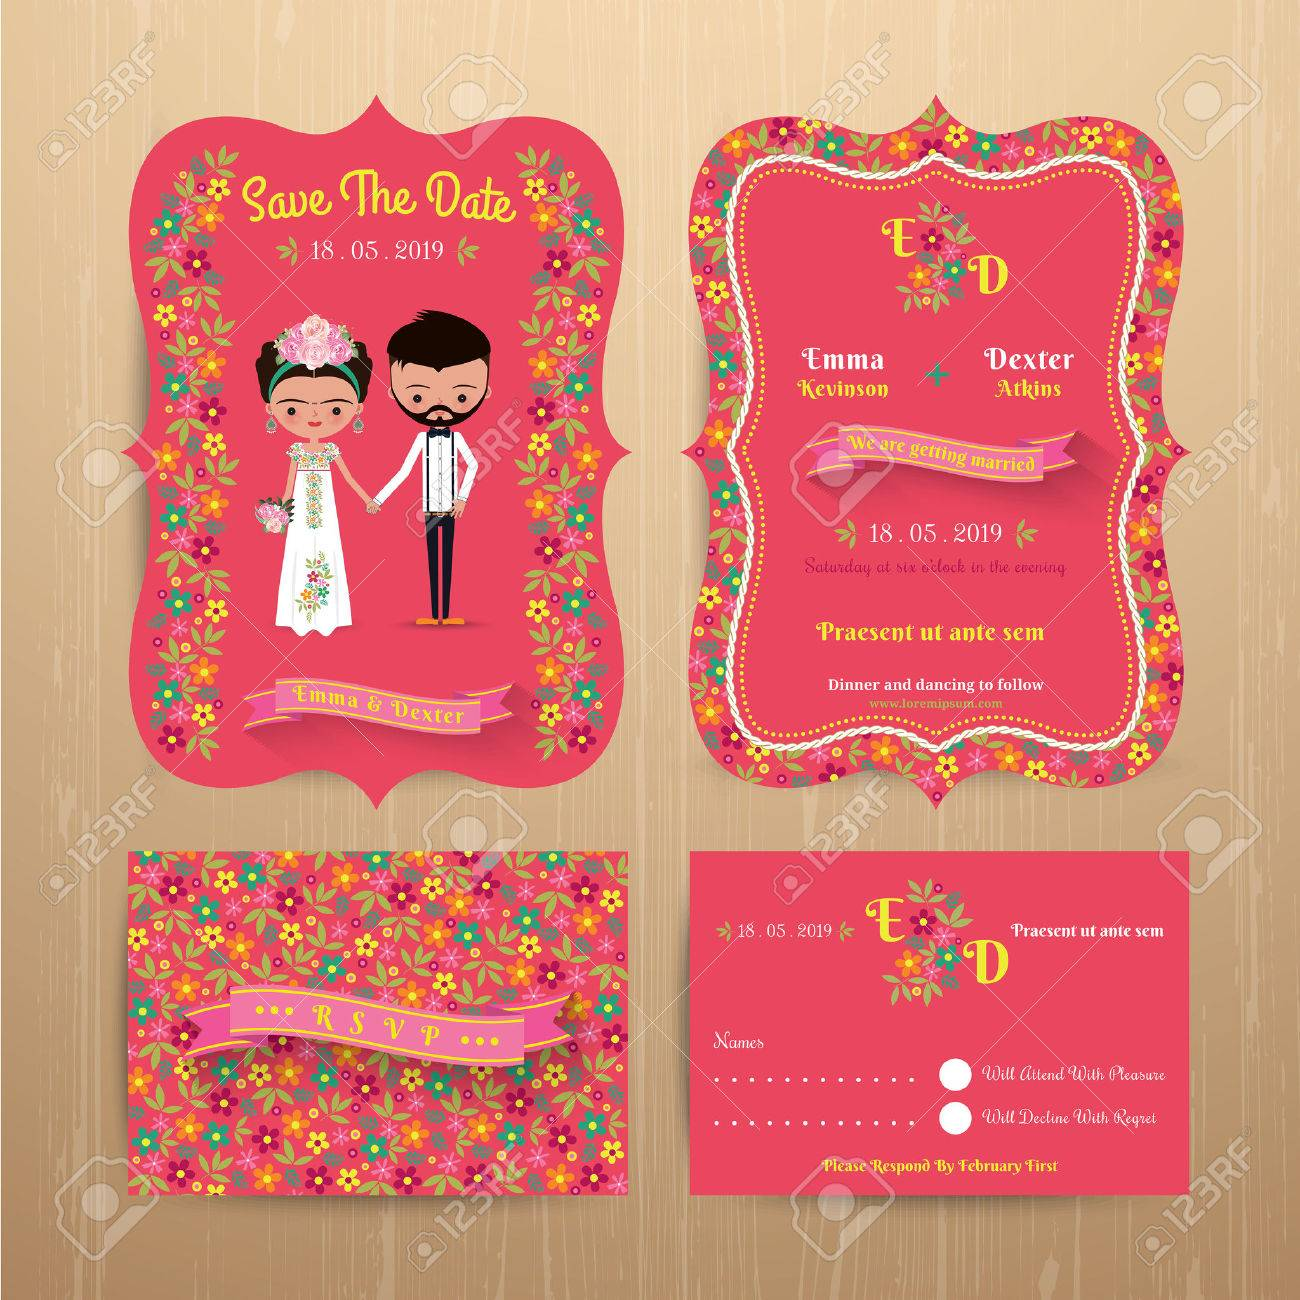 Bride And Groom Rustic Floral Wedding Invitation Card With Save ...